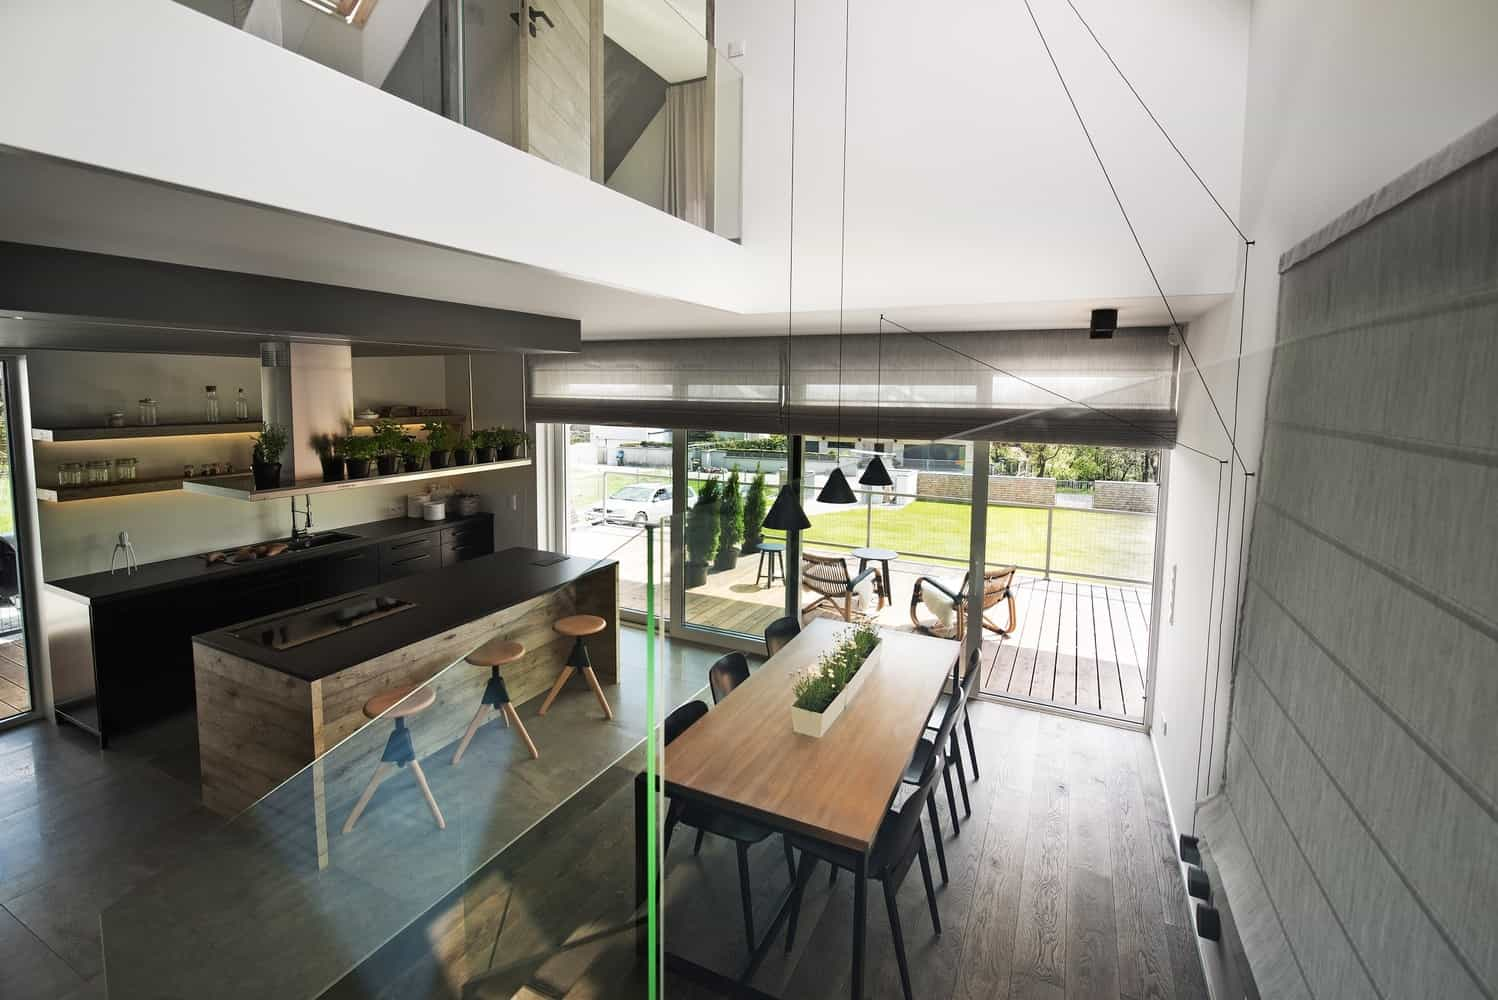 Beautiful Utter Simplicity - House With a View by doomo (12)